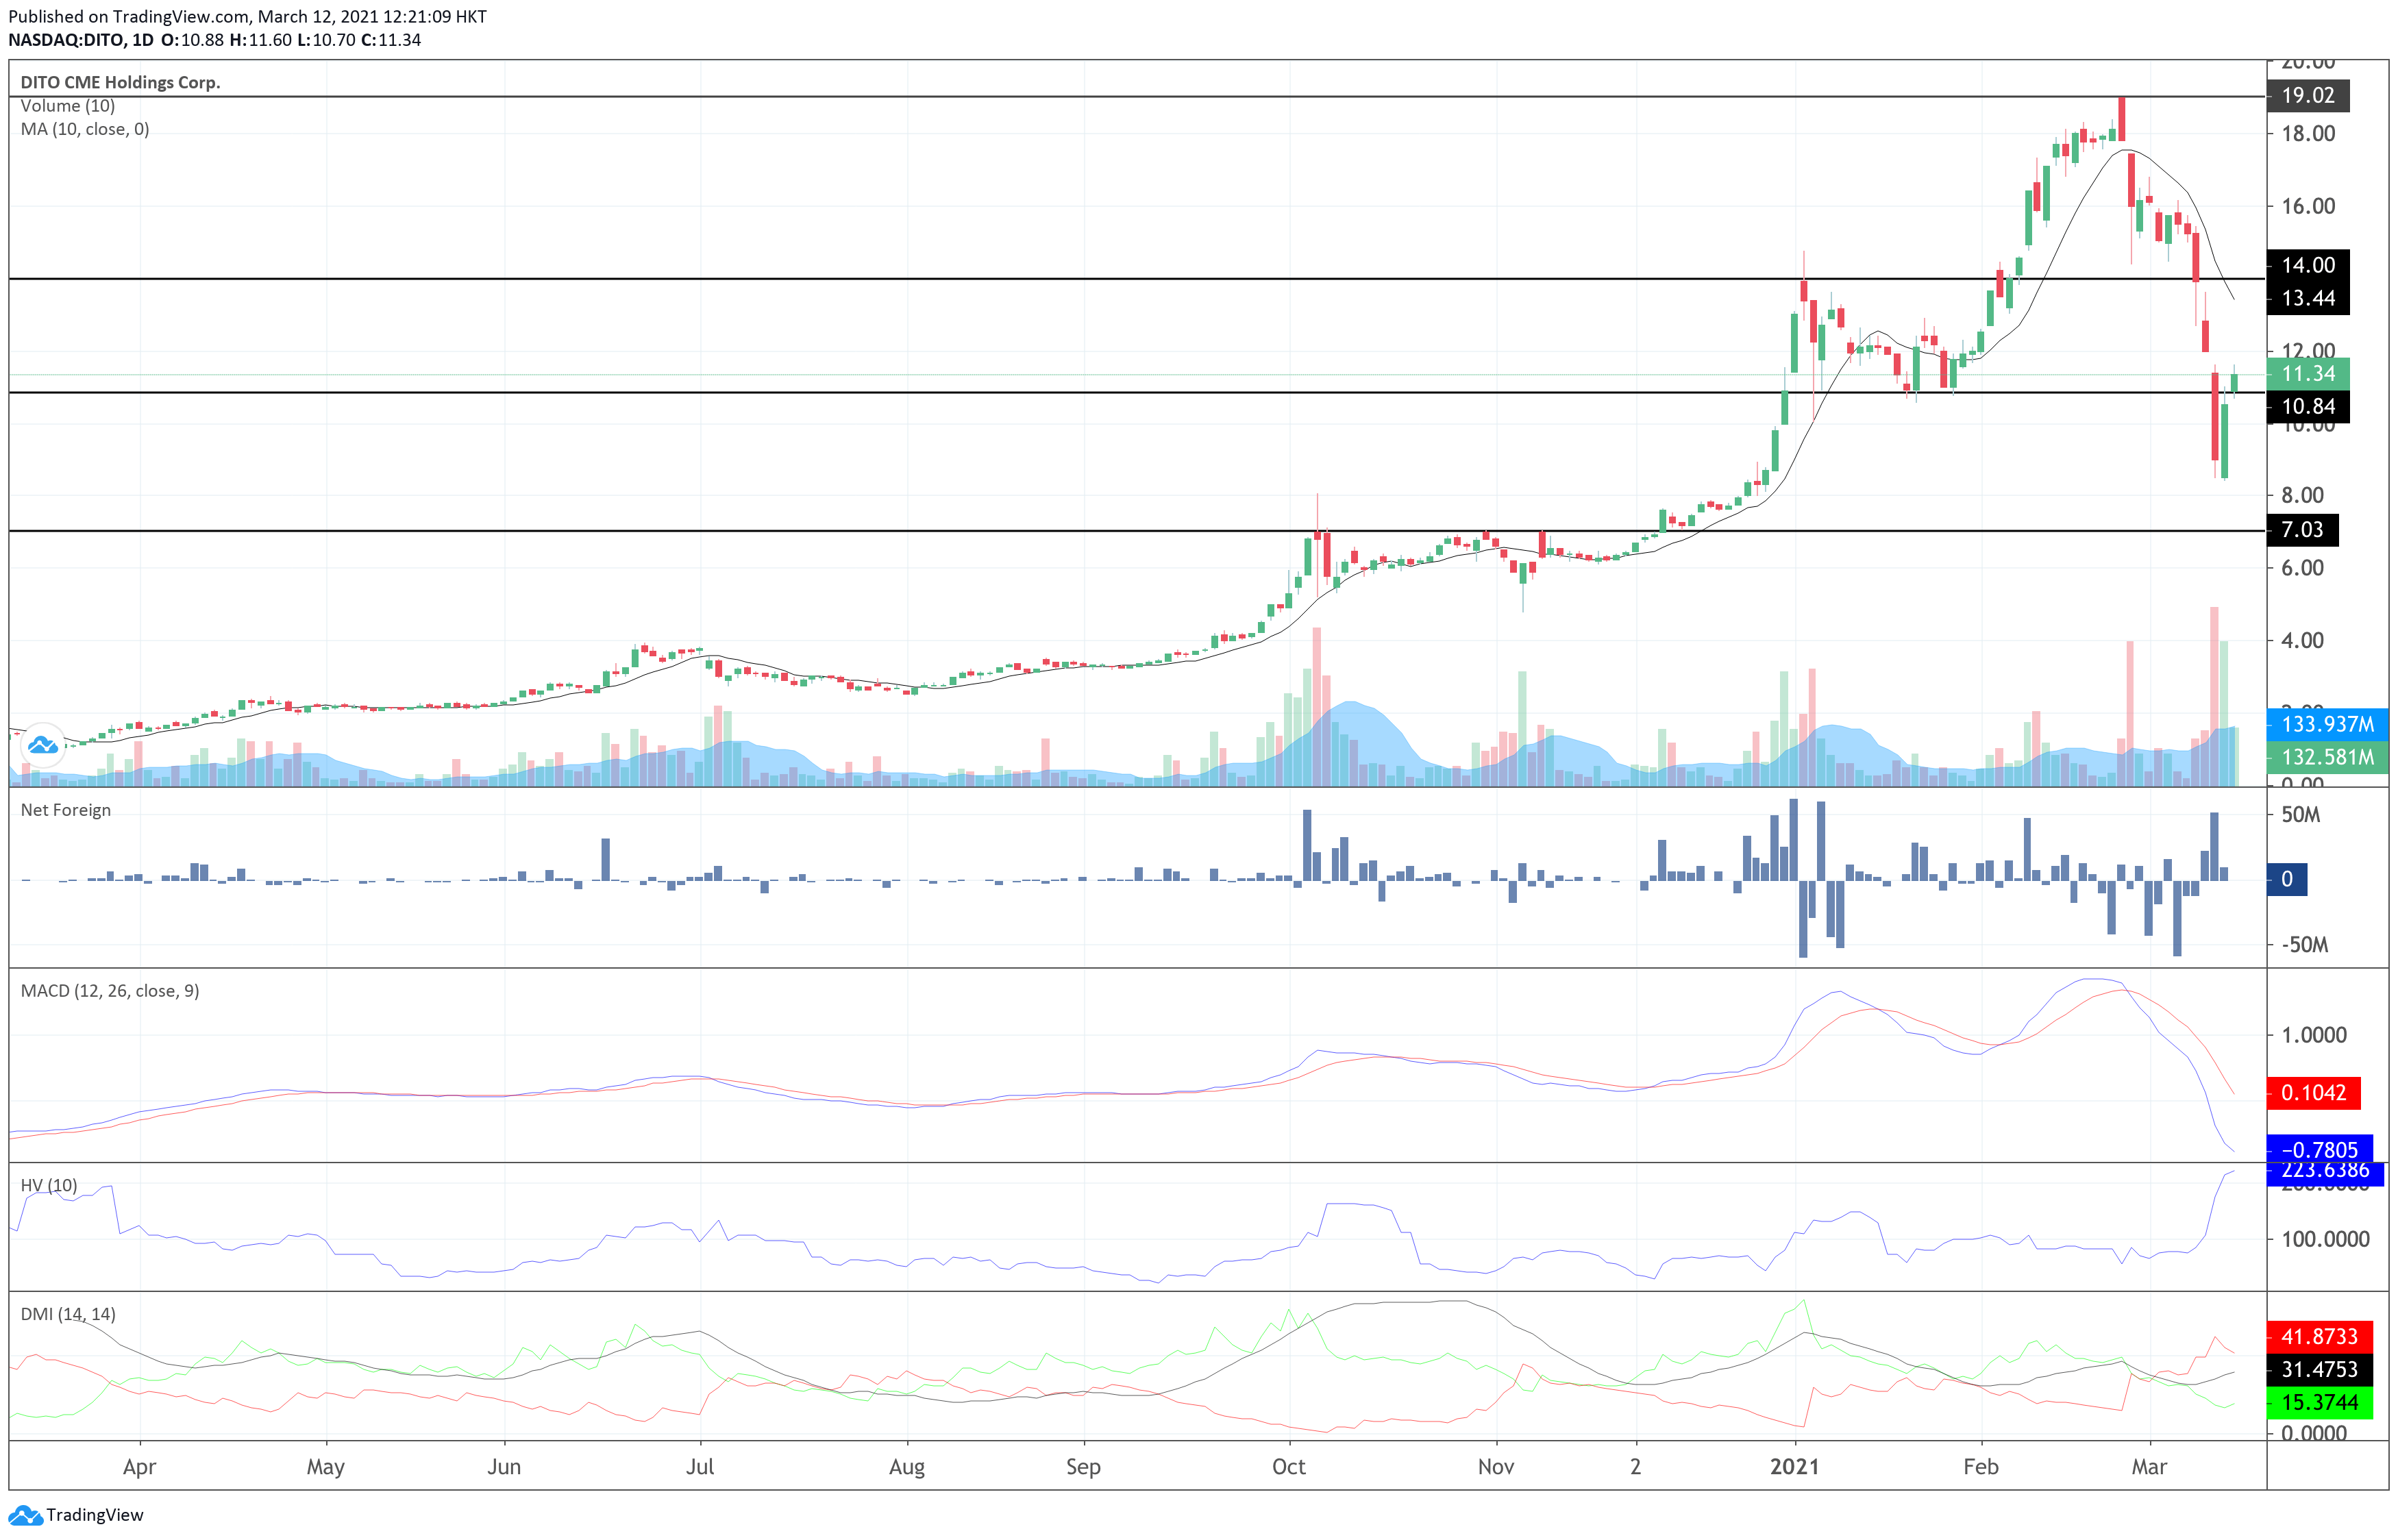 DITO CME Holdings Corp. Technical Analysis - Intraday Chart - 3.12.2021